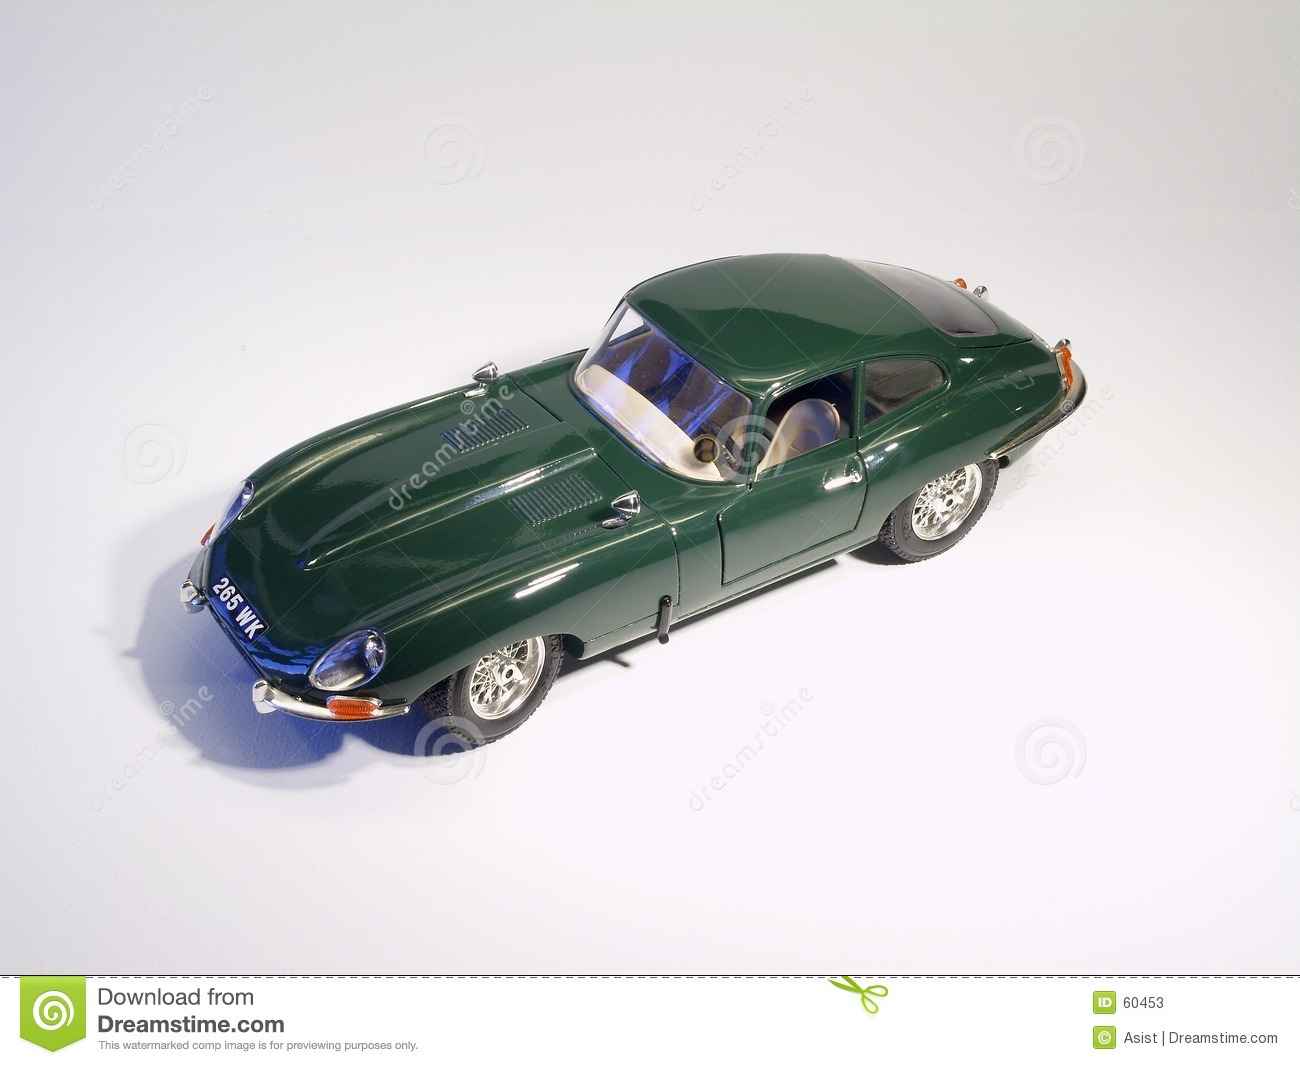 Sportscar Jaguar E-Type model